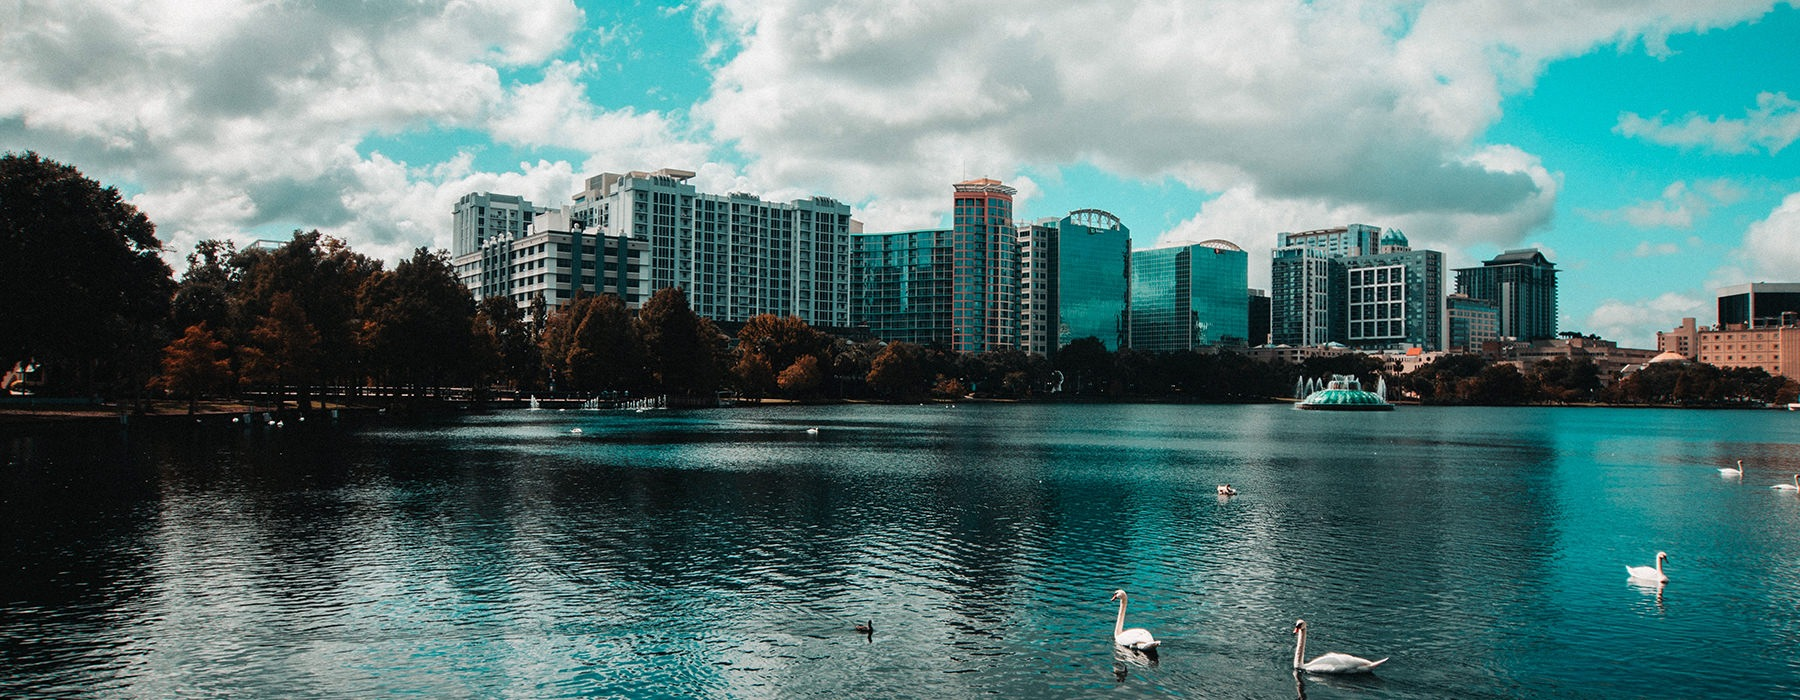 park pond with city view